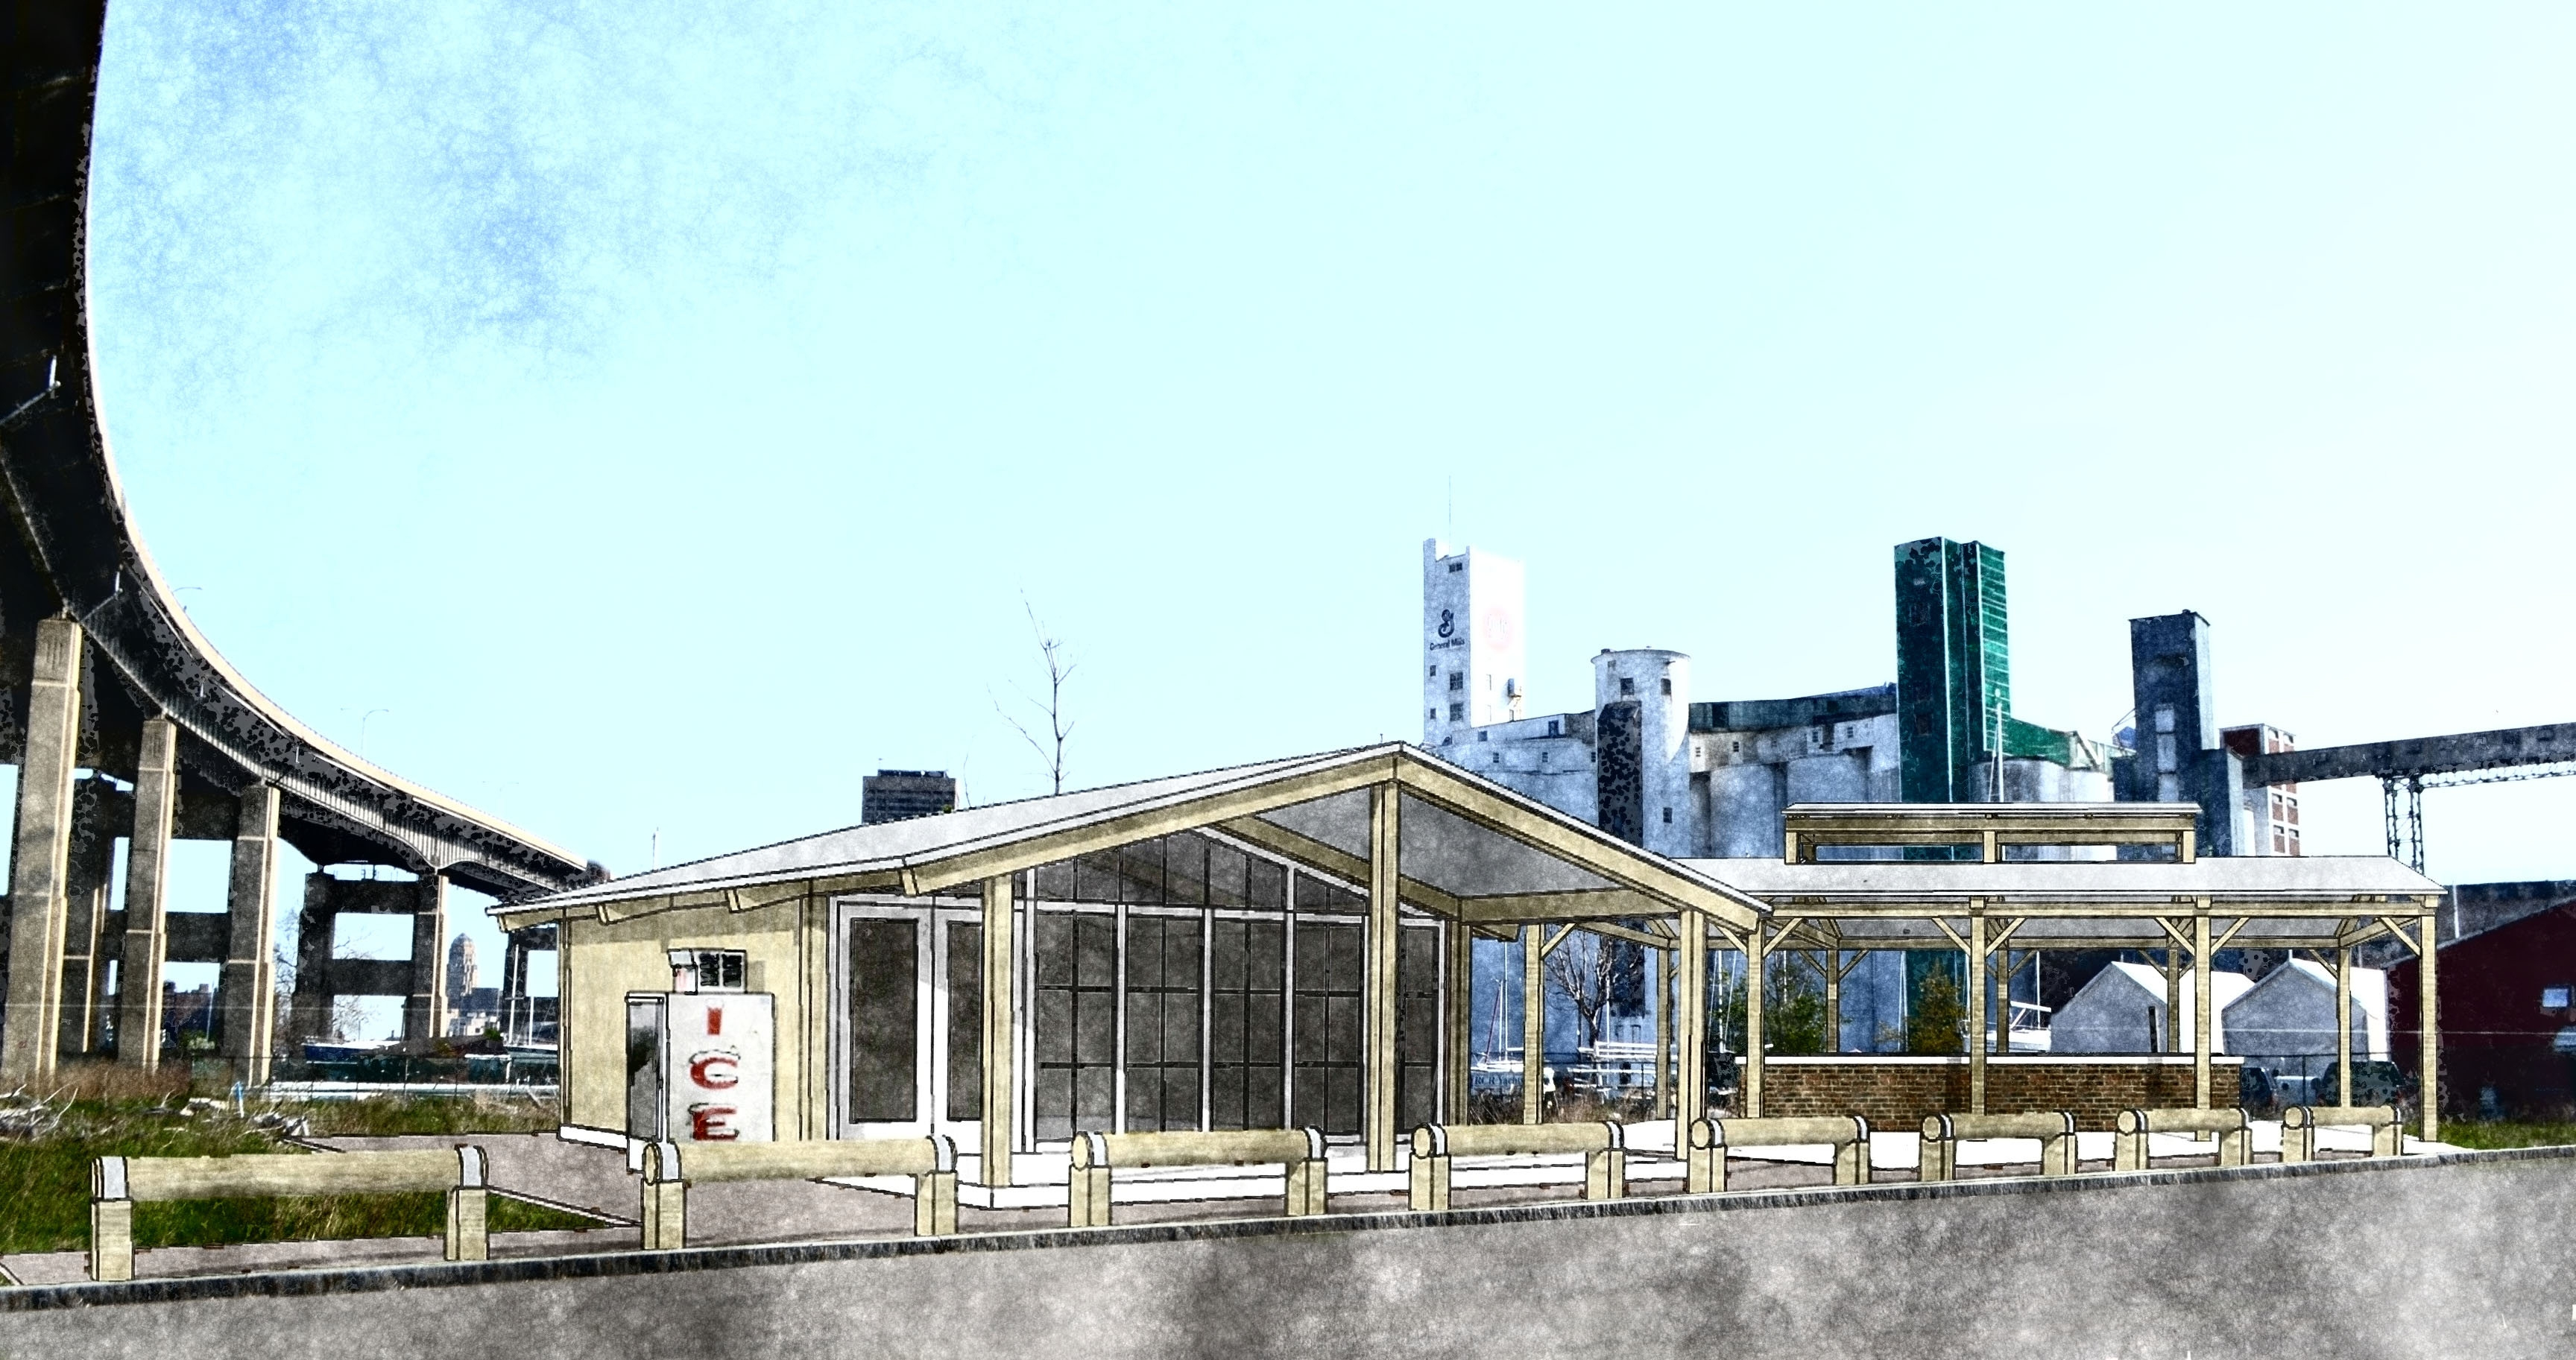 The plan to draw more visitors to the Outer Harbor includes a deli or food stand in the shadow of the Skyway.